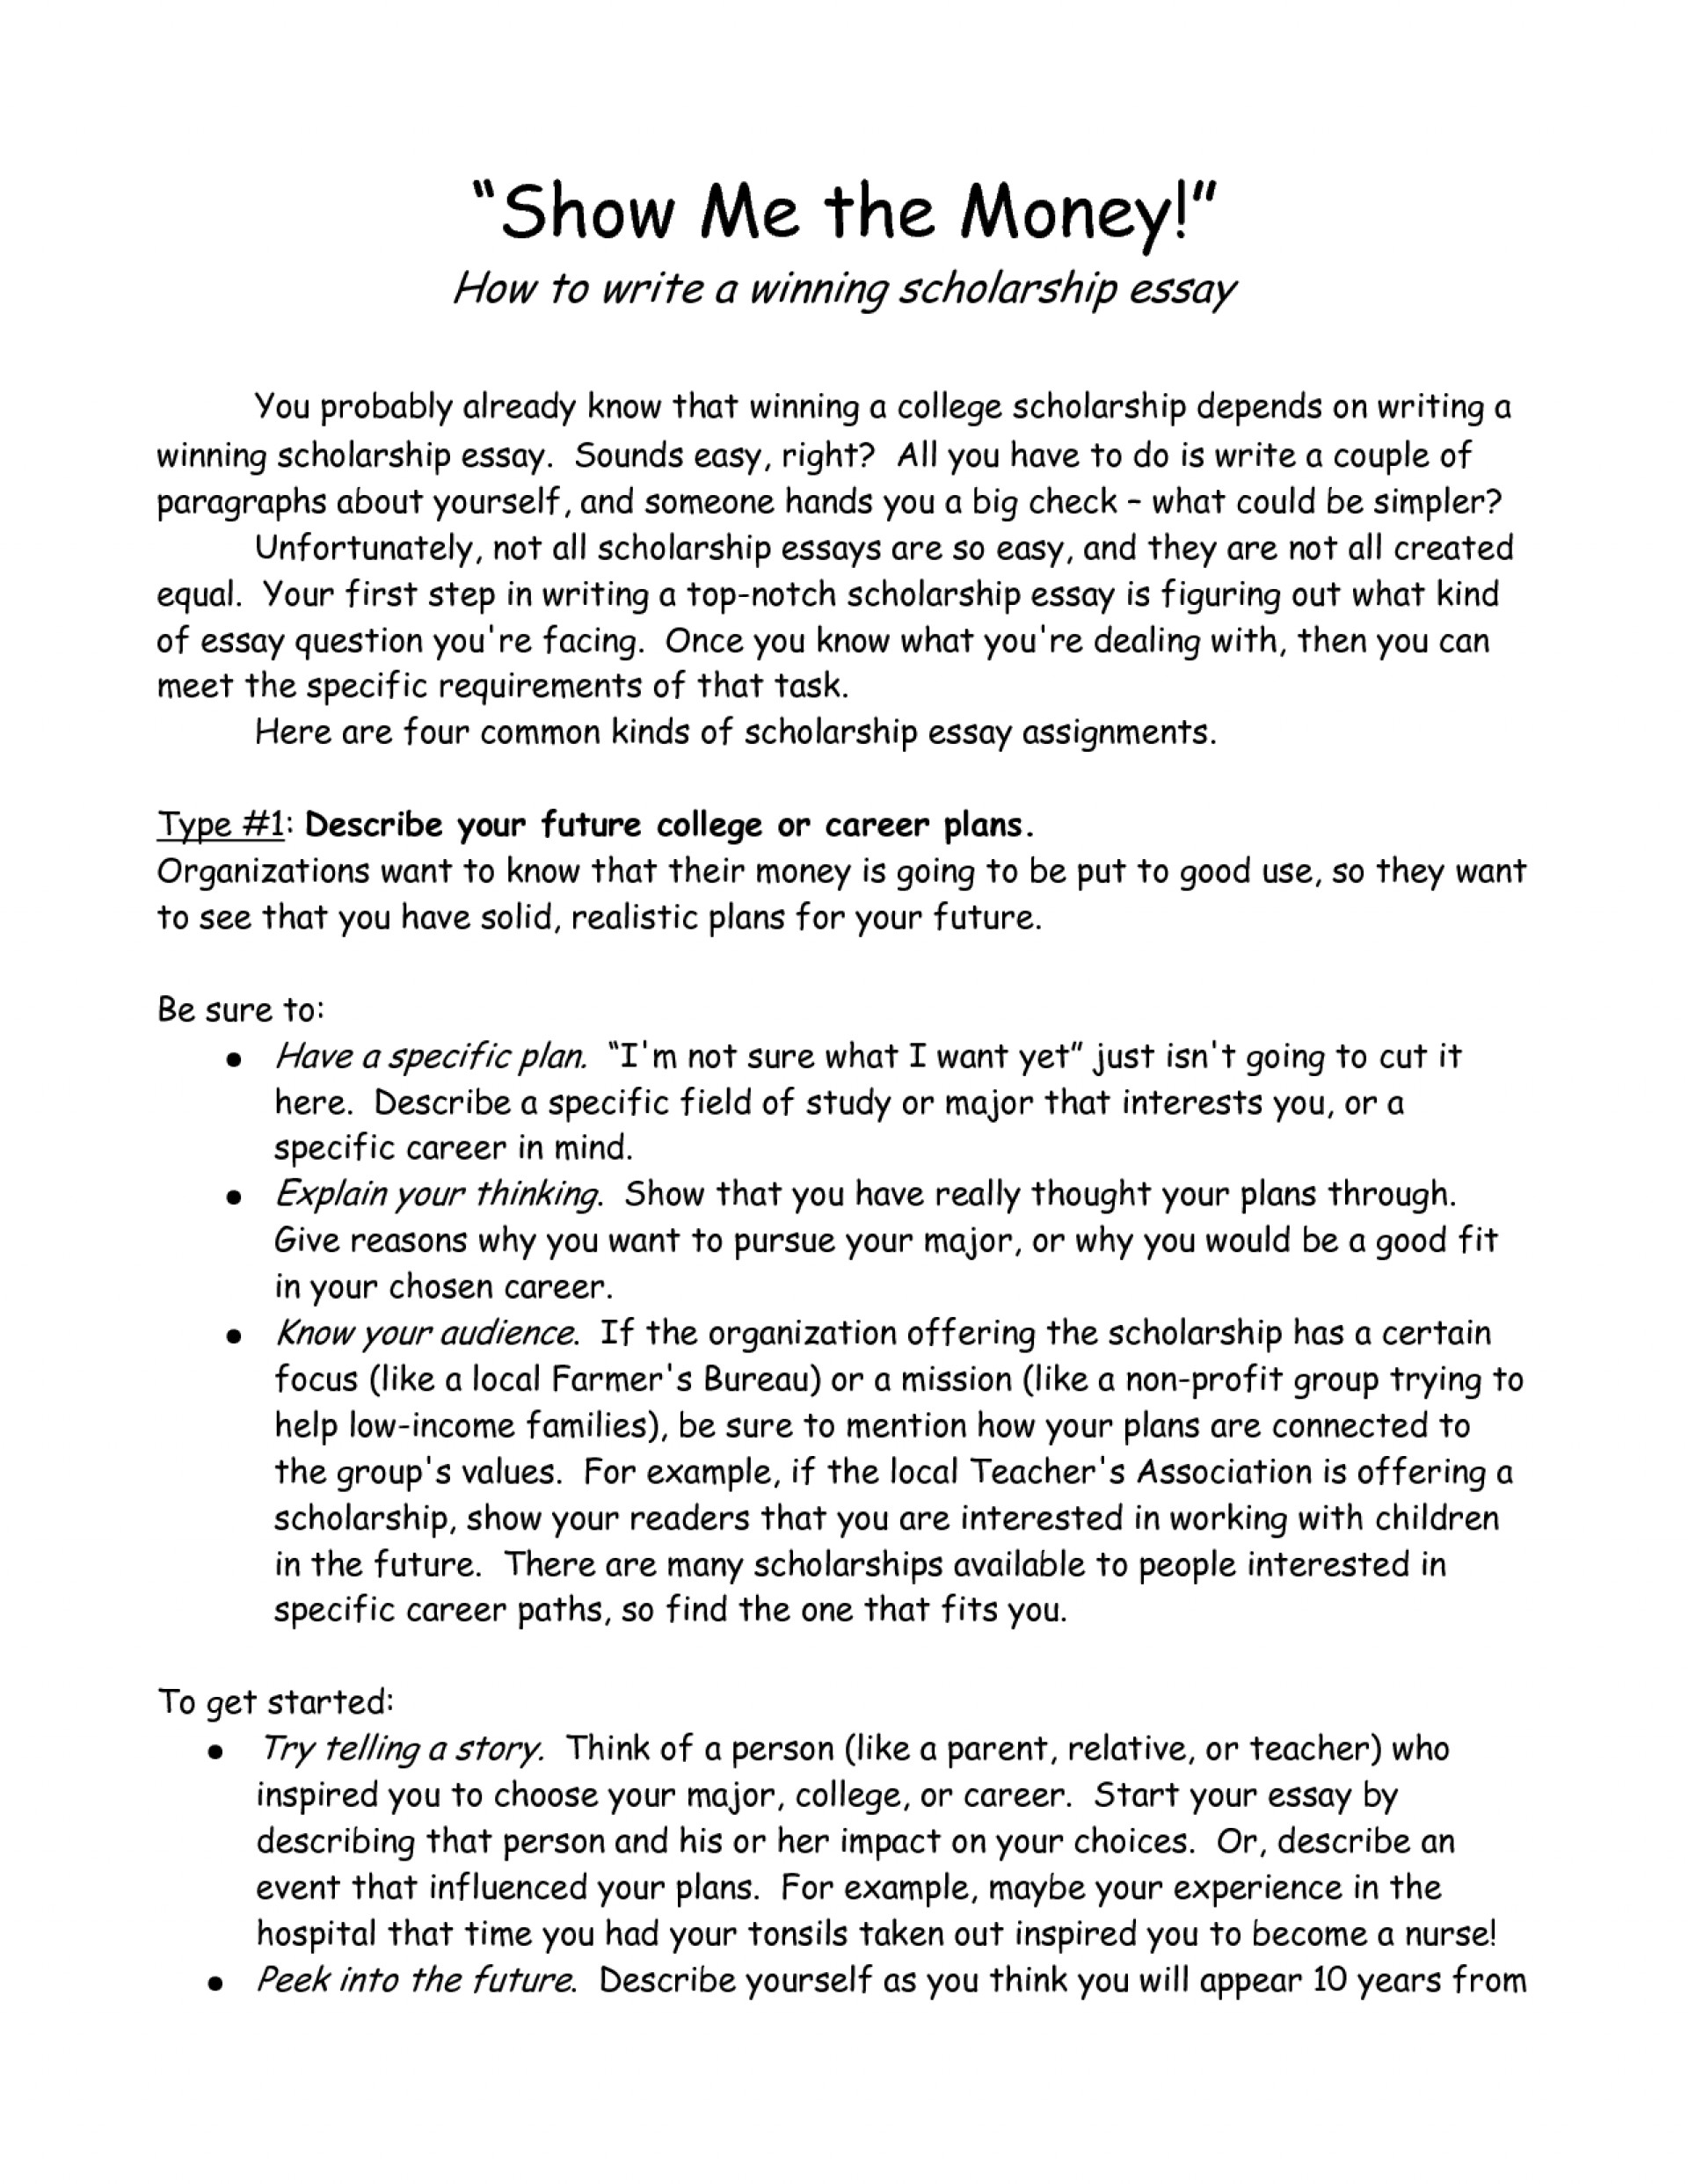 001 Scholarship Essays Essay Unusual Topics 2017 Format Prompts 1920